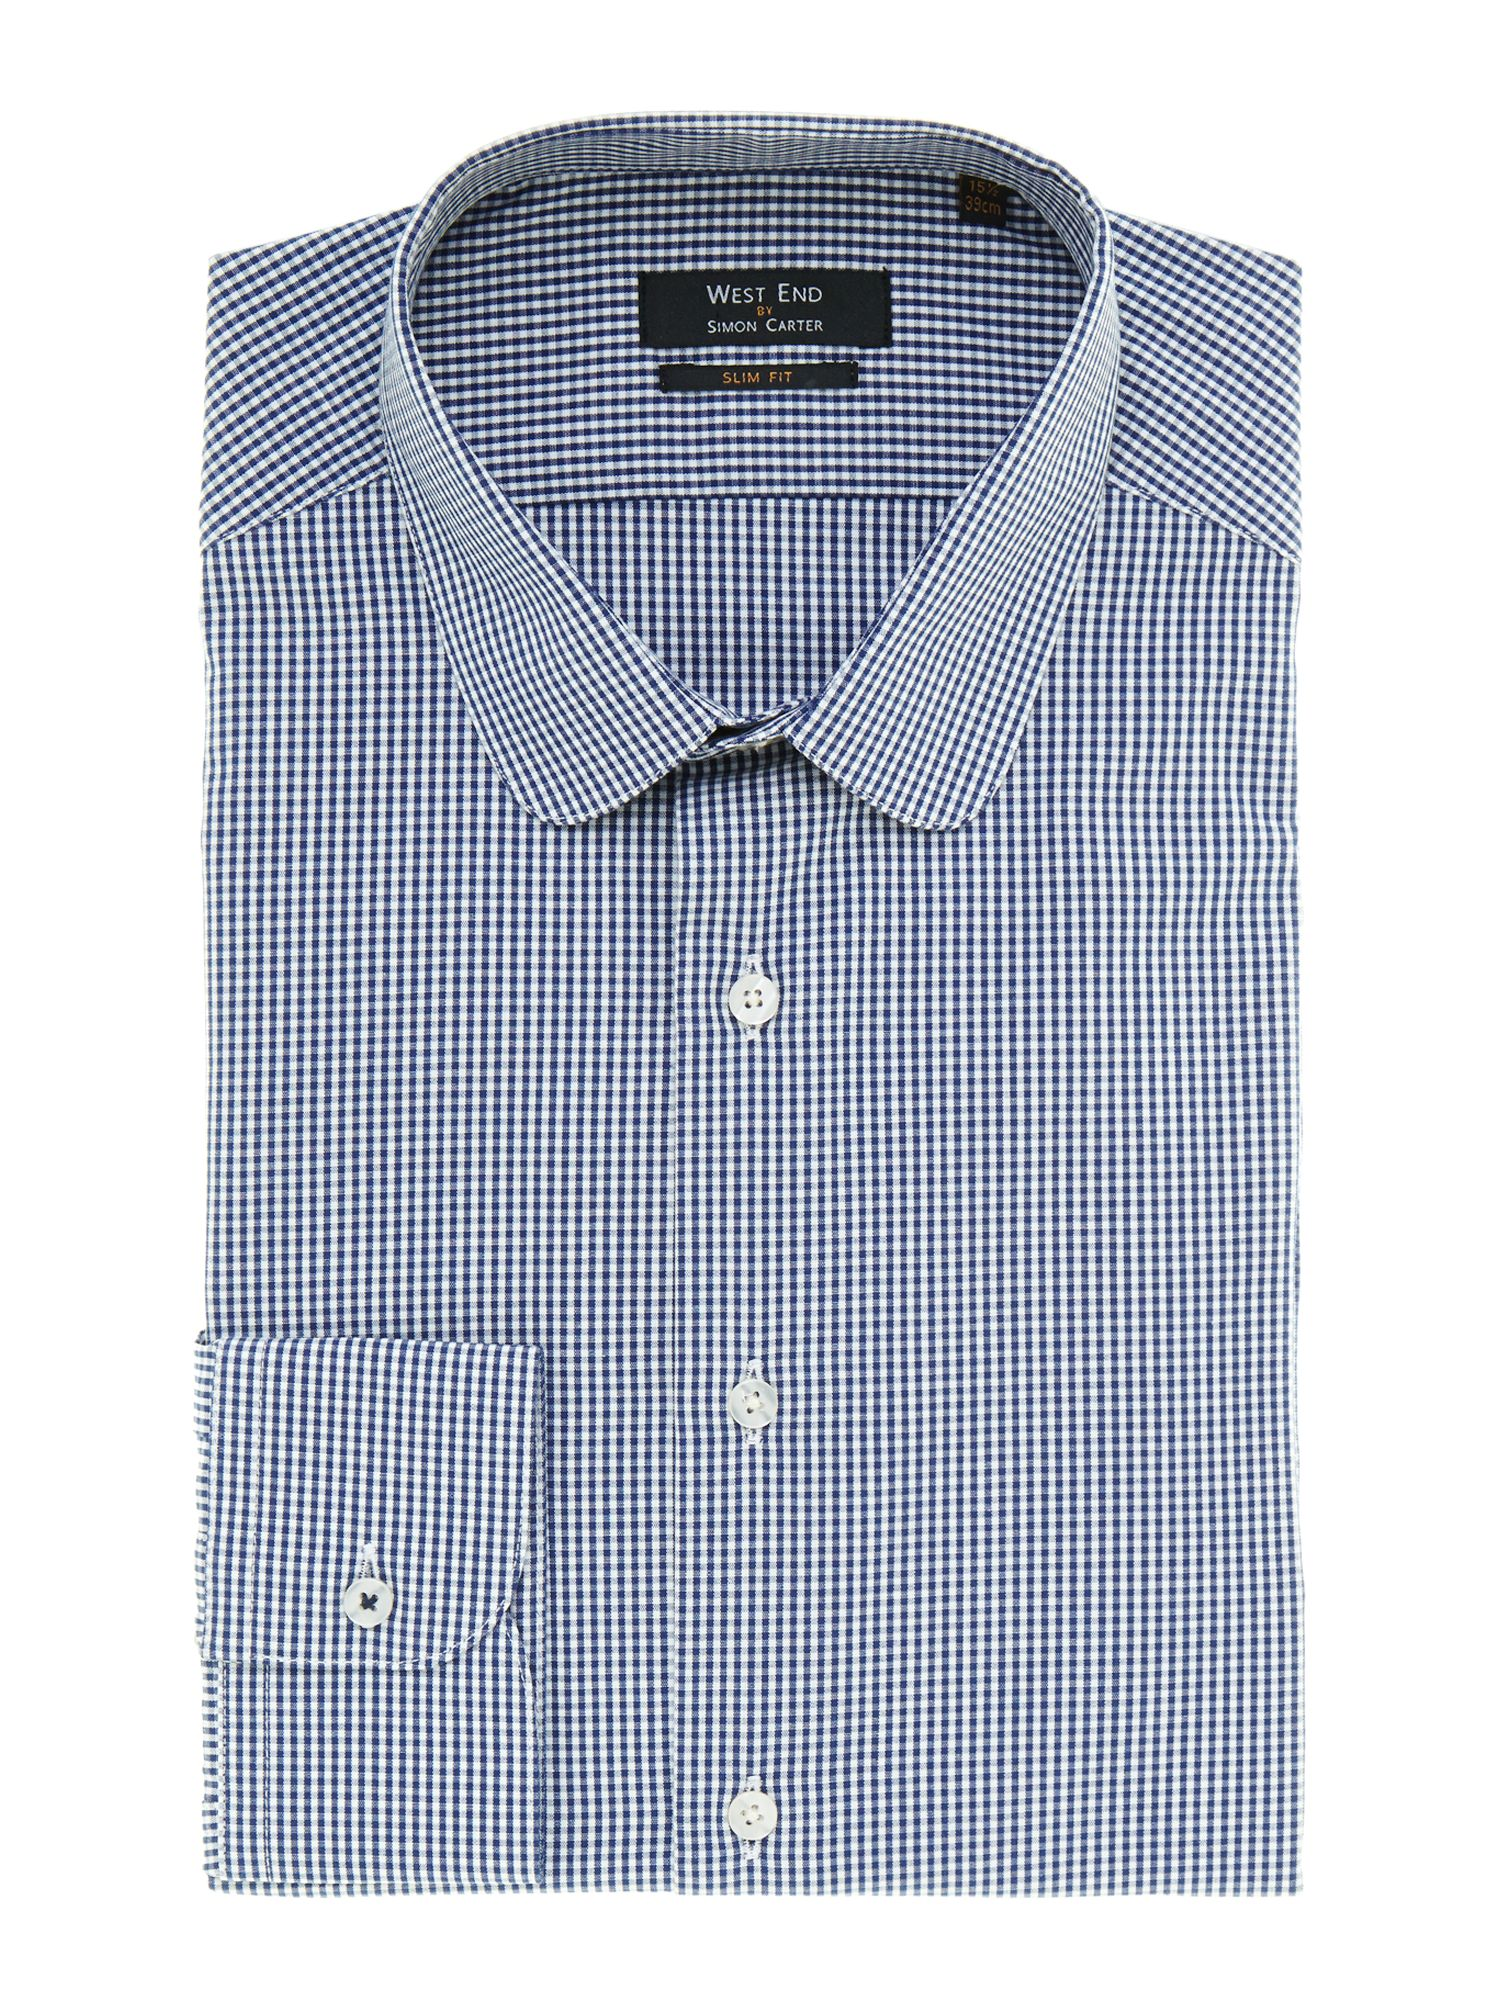 Penny gingham slim fit shirt